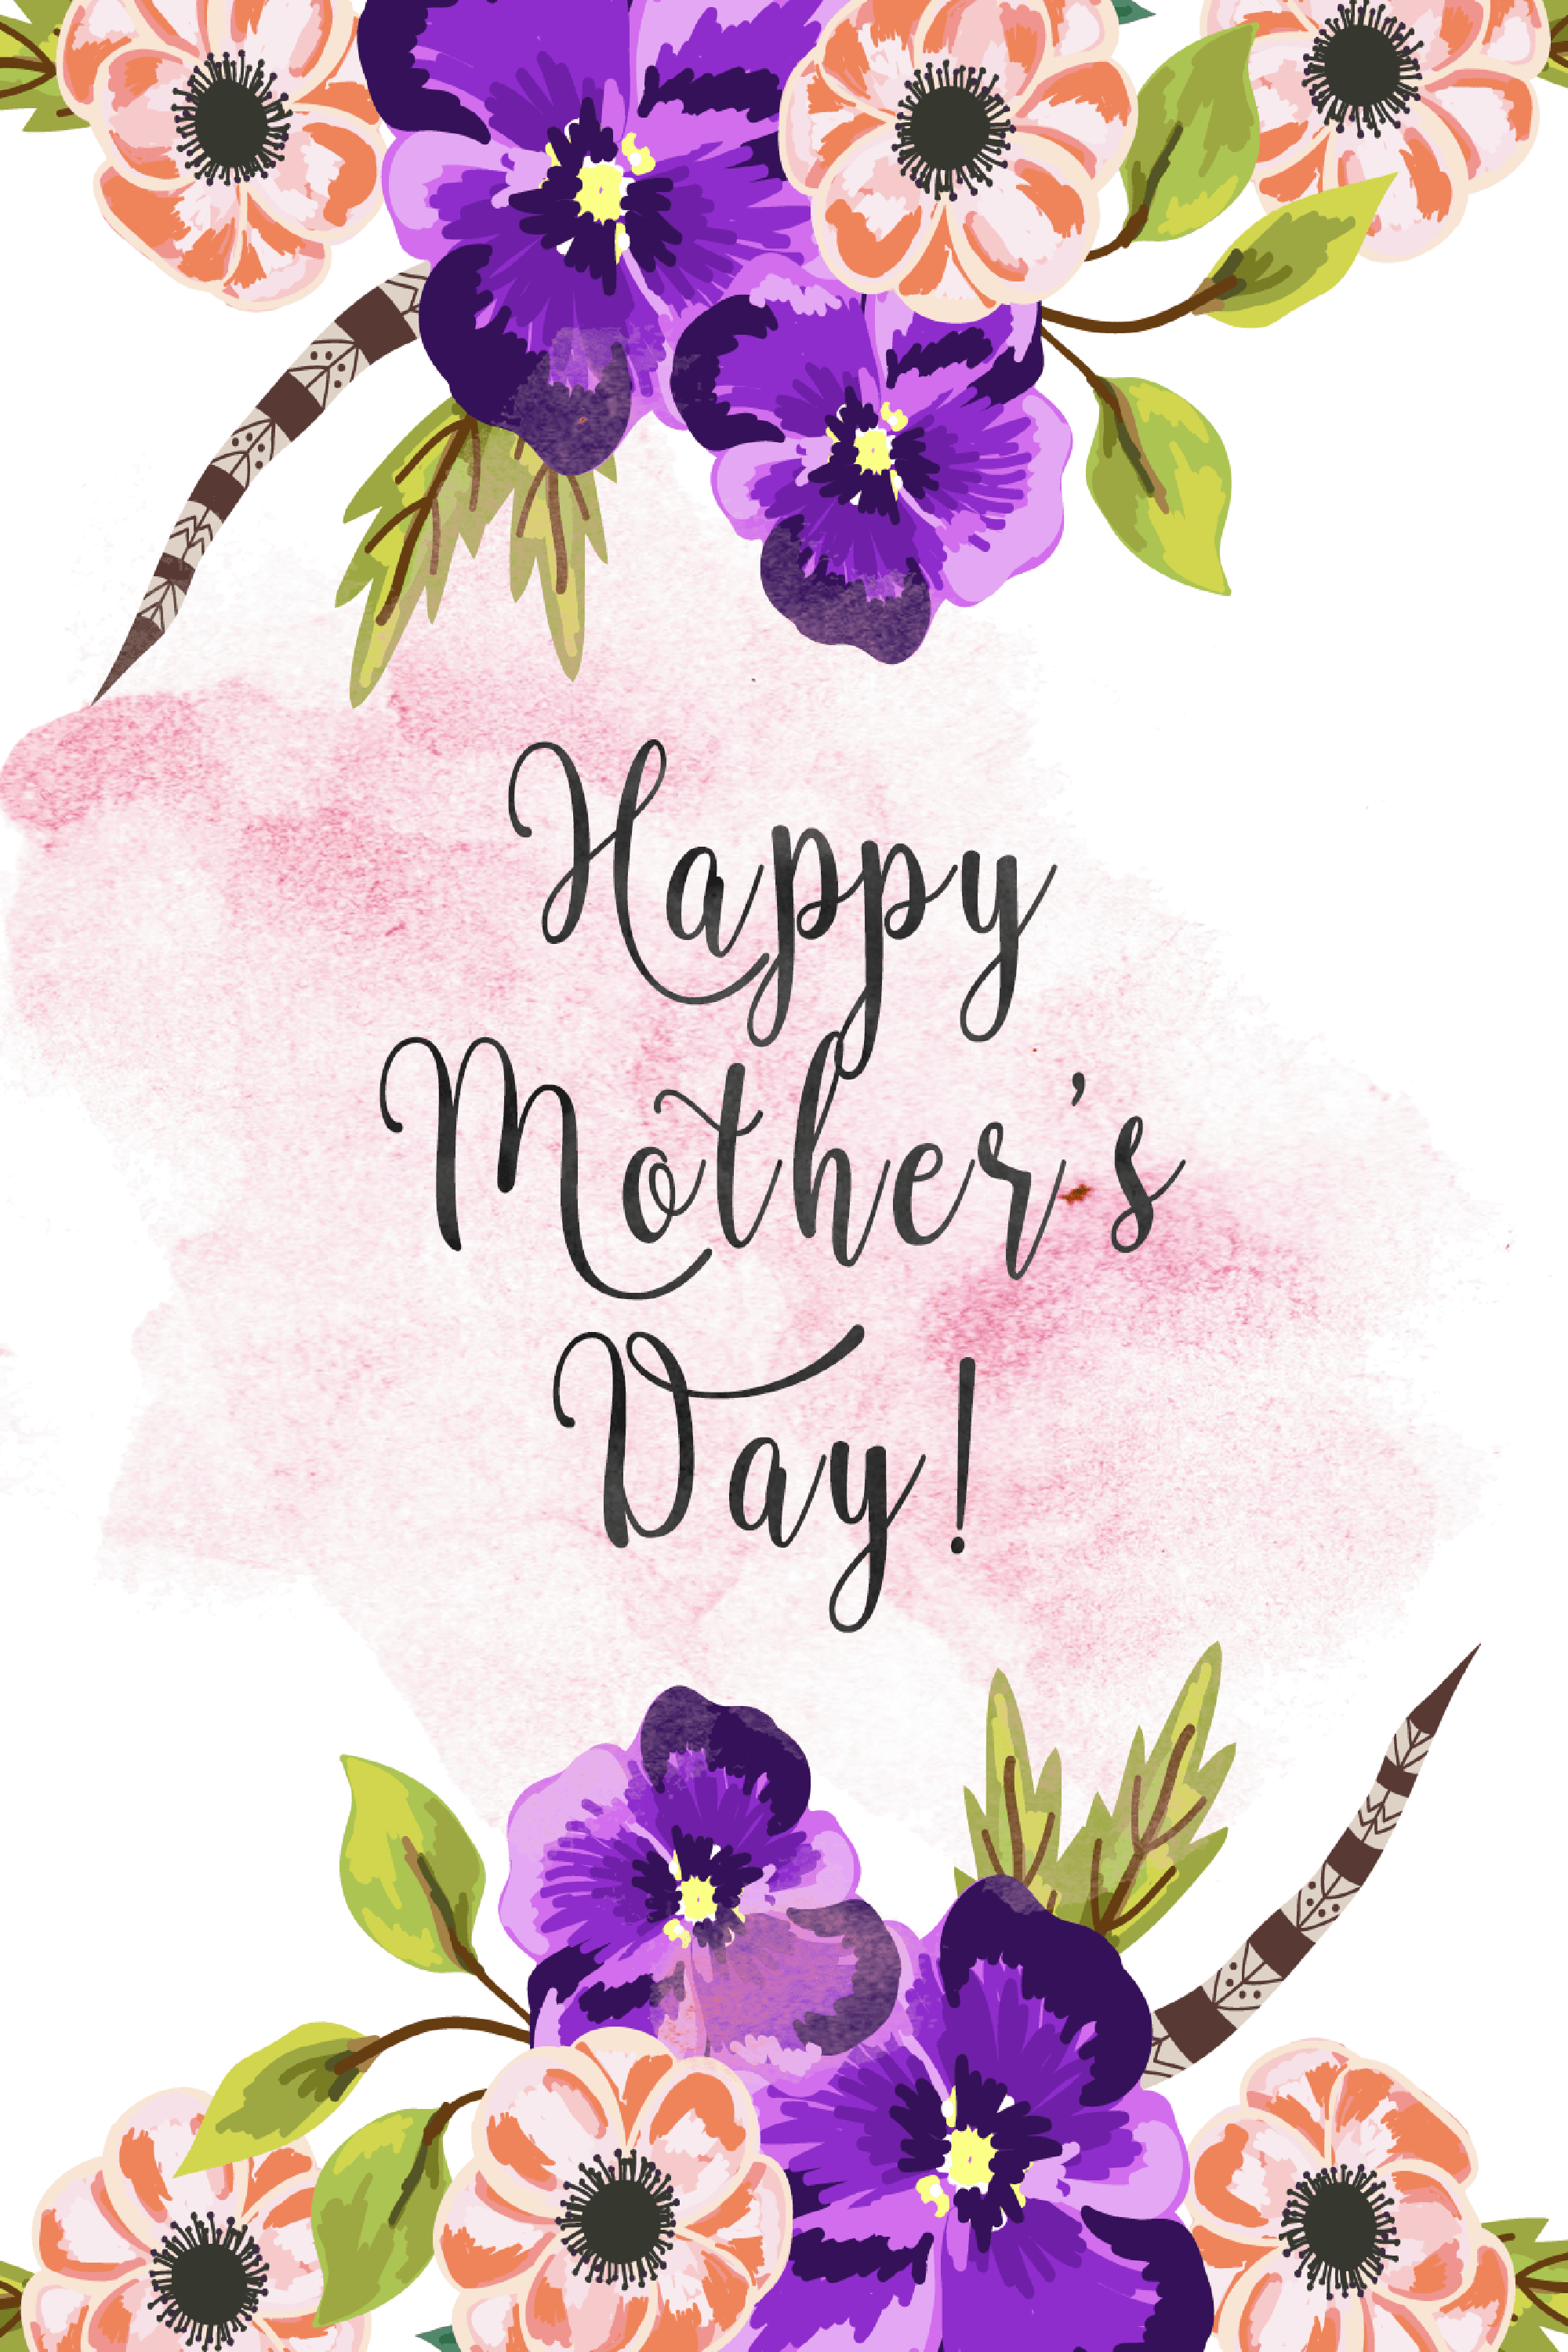 30 Cute Free Printable Mothers Day Cards - Mom Cards You Can Print - Free Printable Mothers Day Cards No Download